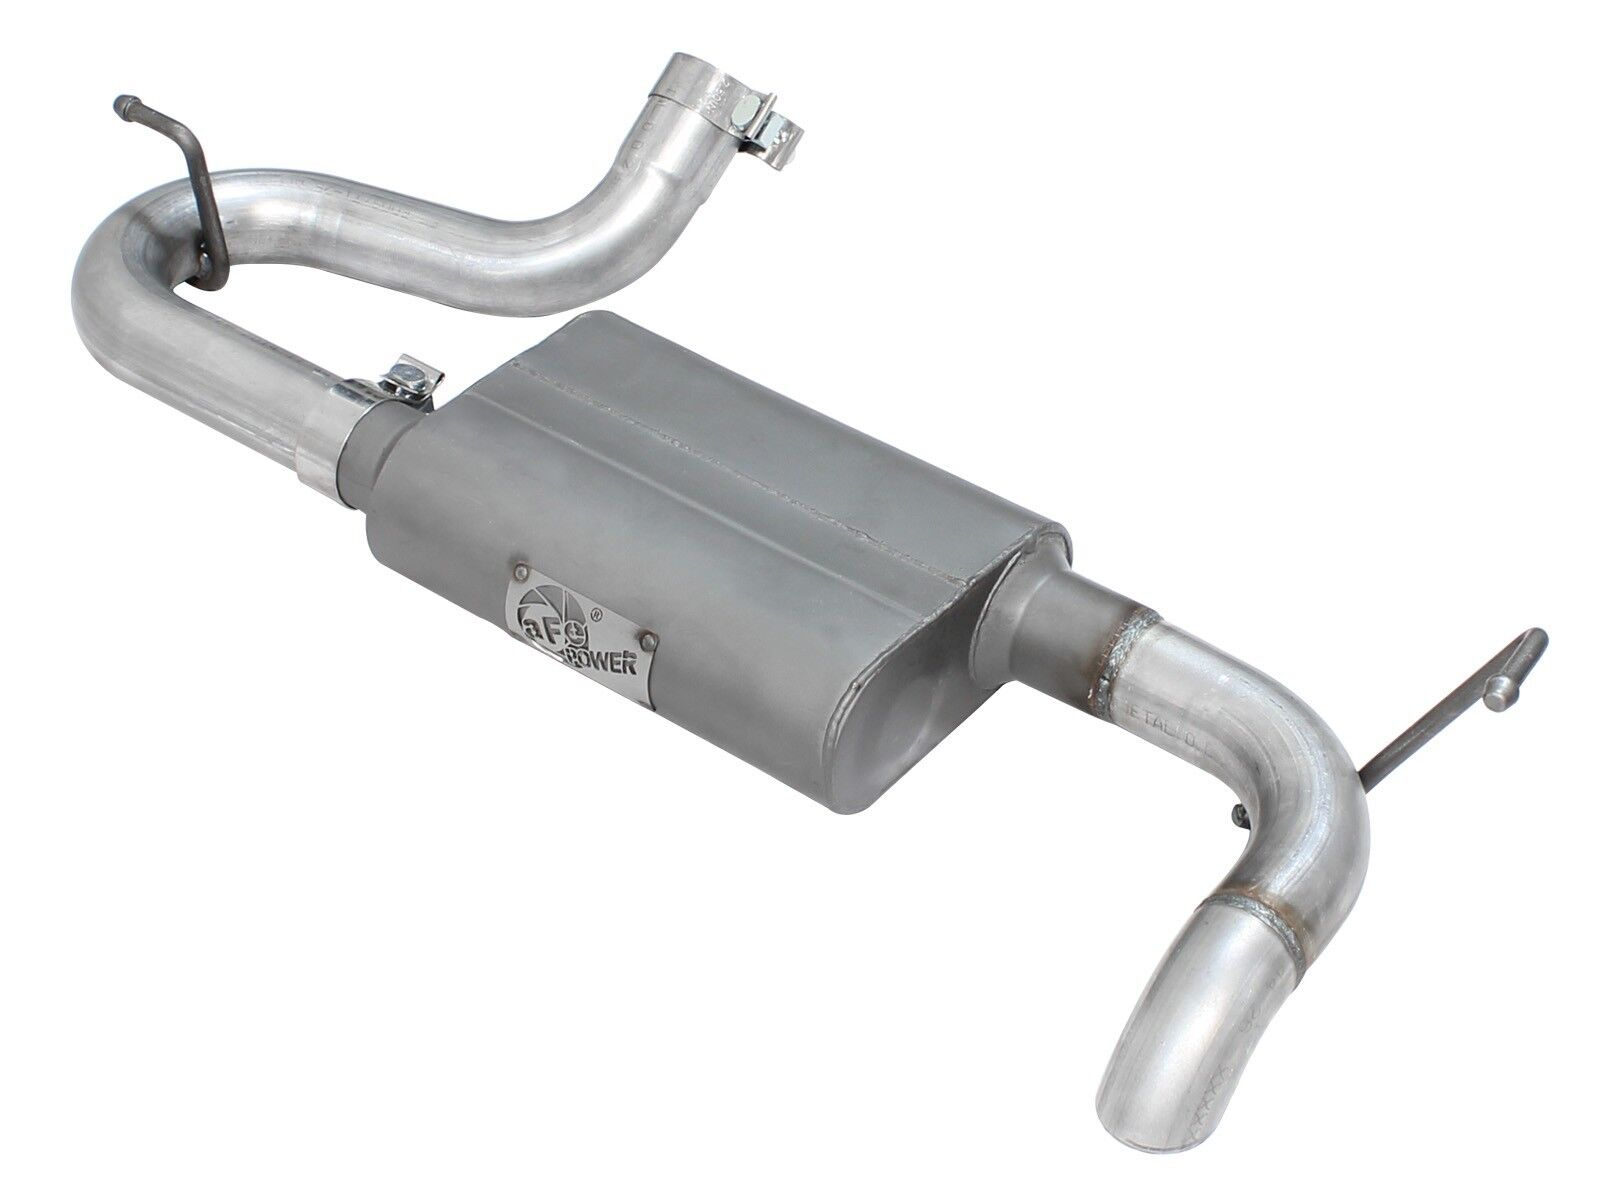 aFe Power 49-48069 Cat-Back Exhaust System